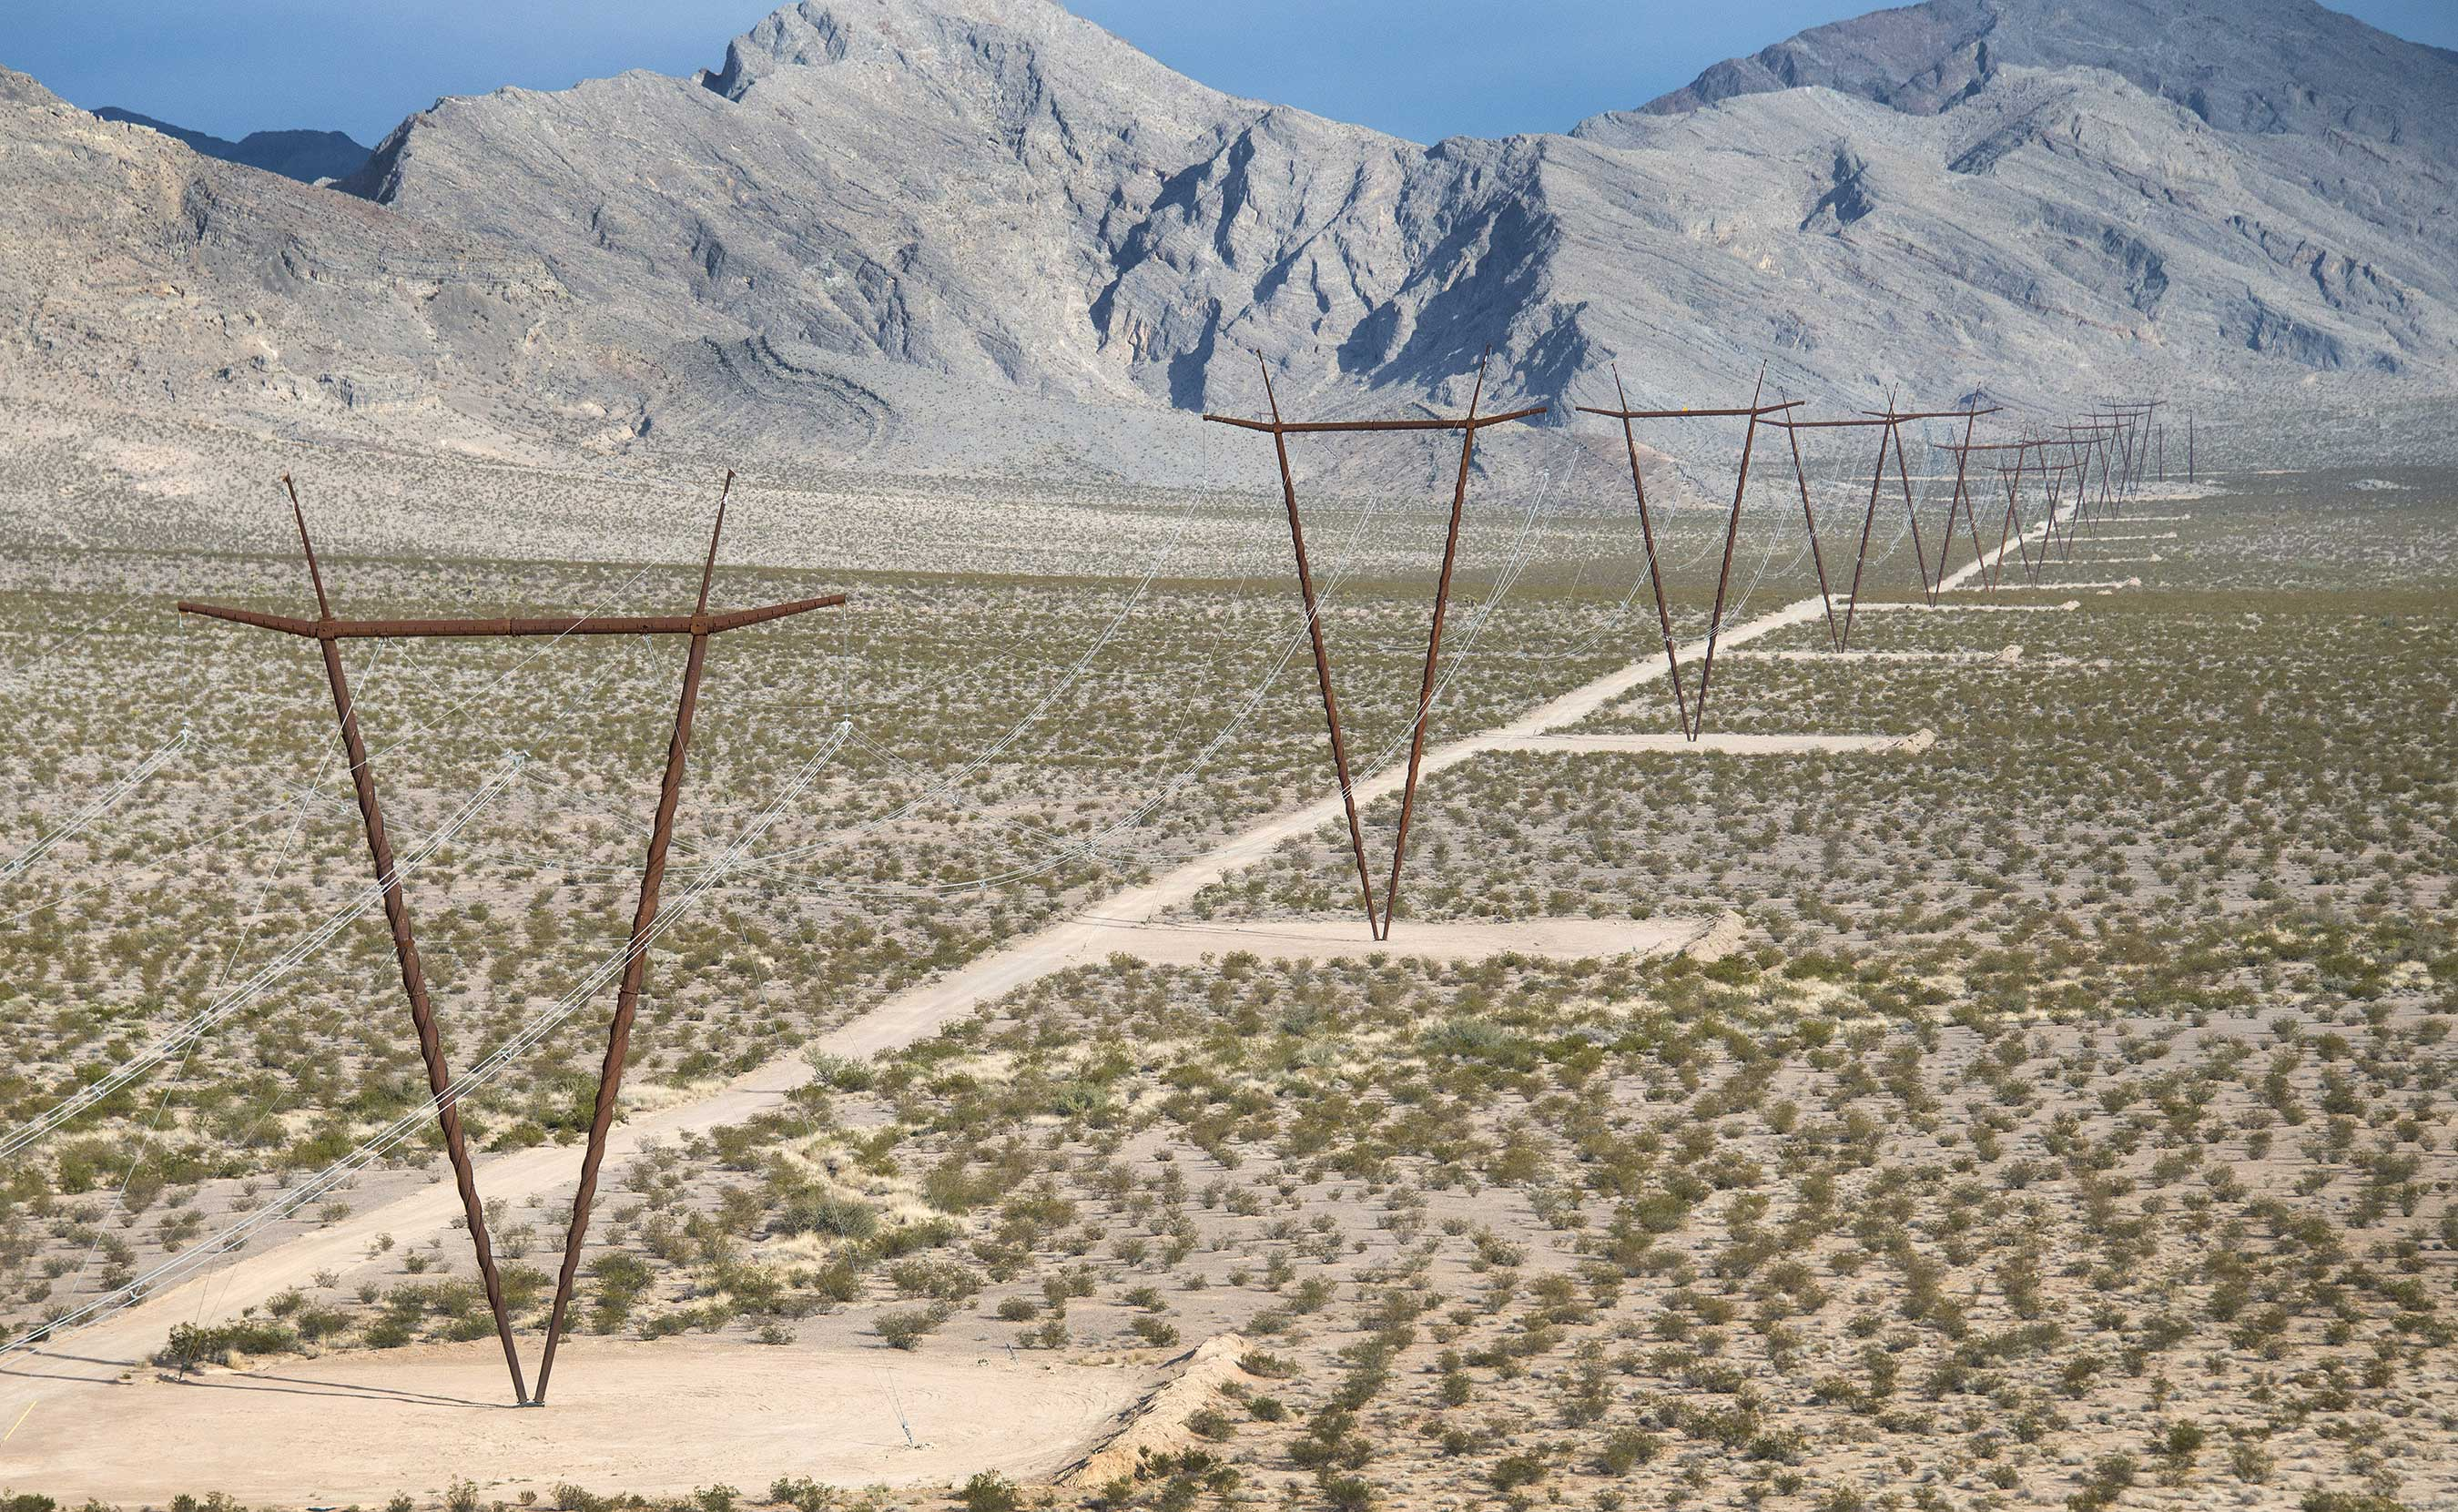 ONLine - The One Nevada Line connects our northern and southern electric systems, creating opportunities for renewable energy and operating efficiencies.